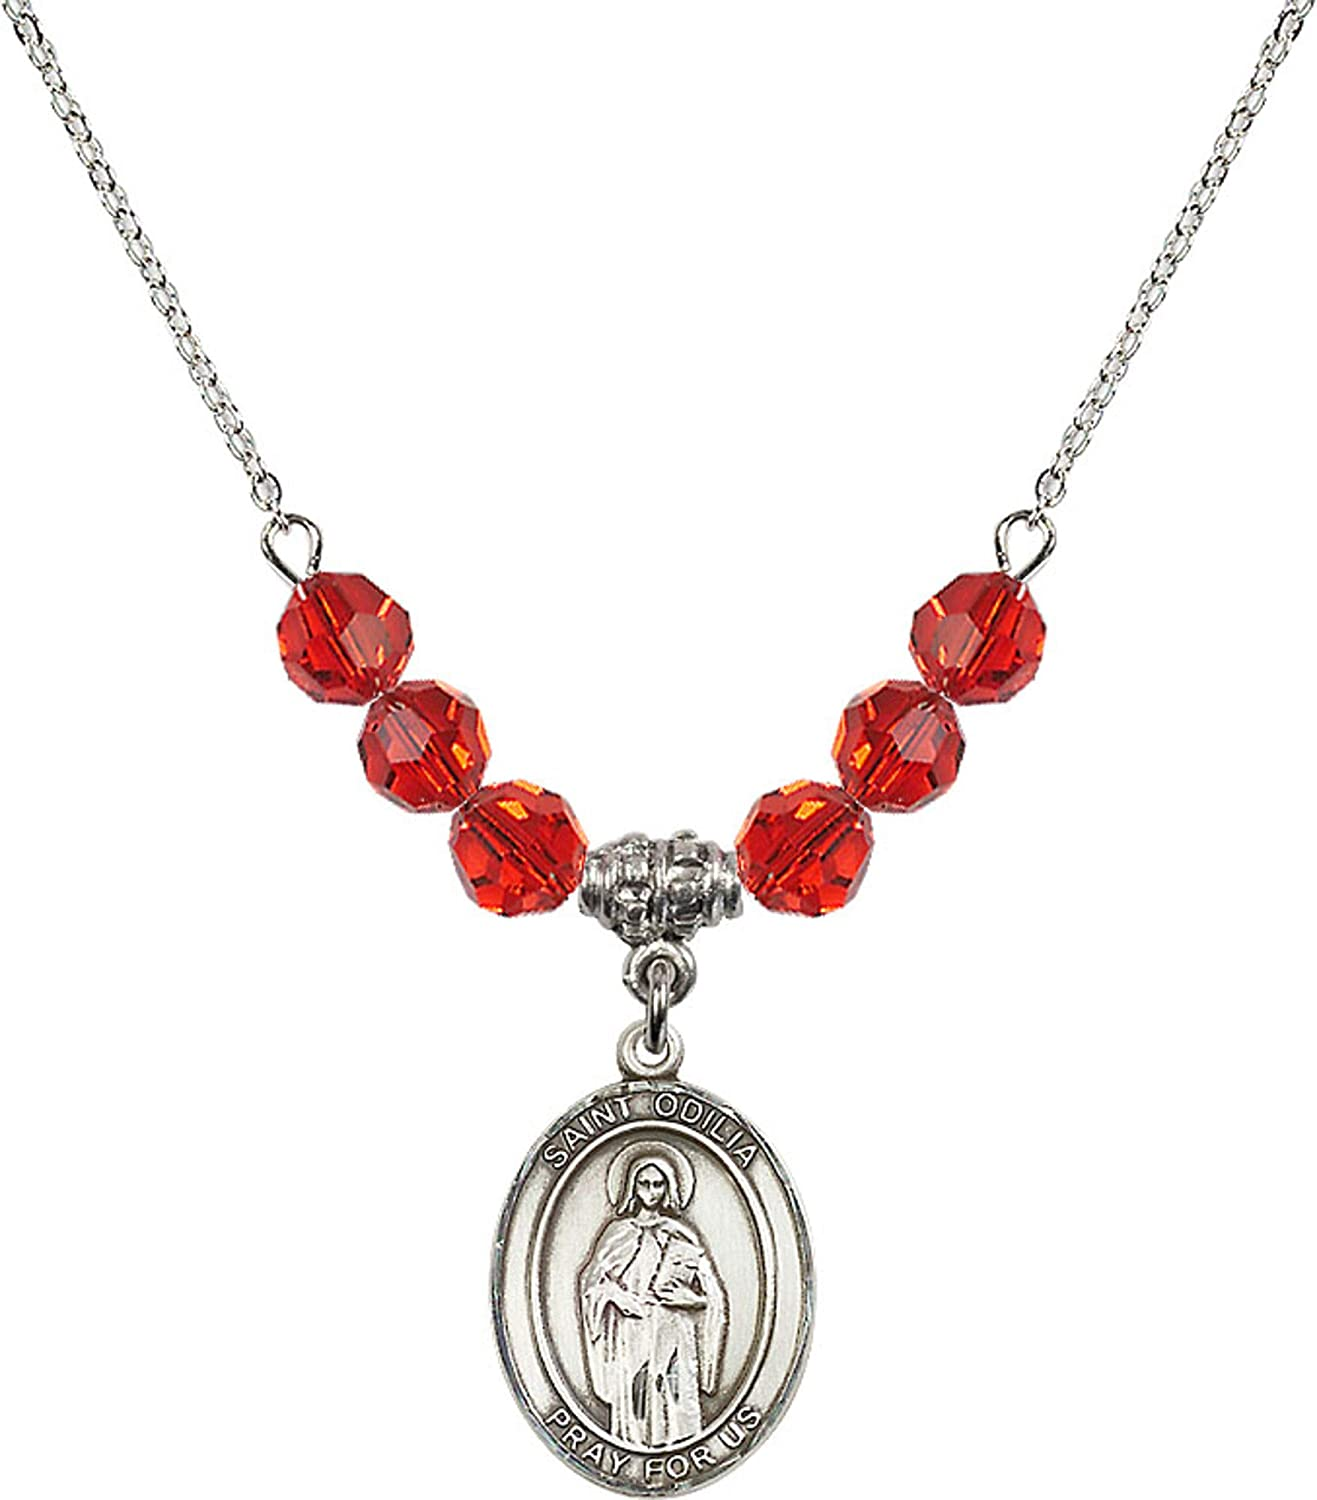 Bonyak Jewelry 18 Inch Rhodium Plated Necklace w// 6mm Red July Birth Month Stone Beads and Saint Odilia Charm